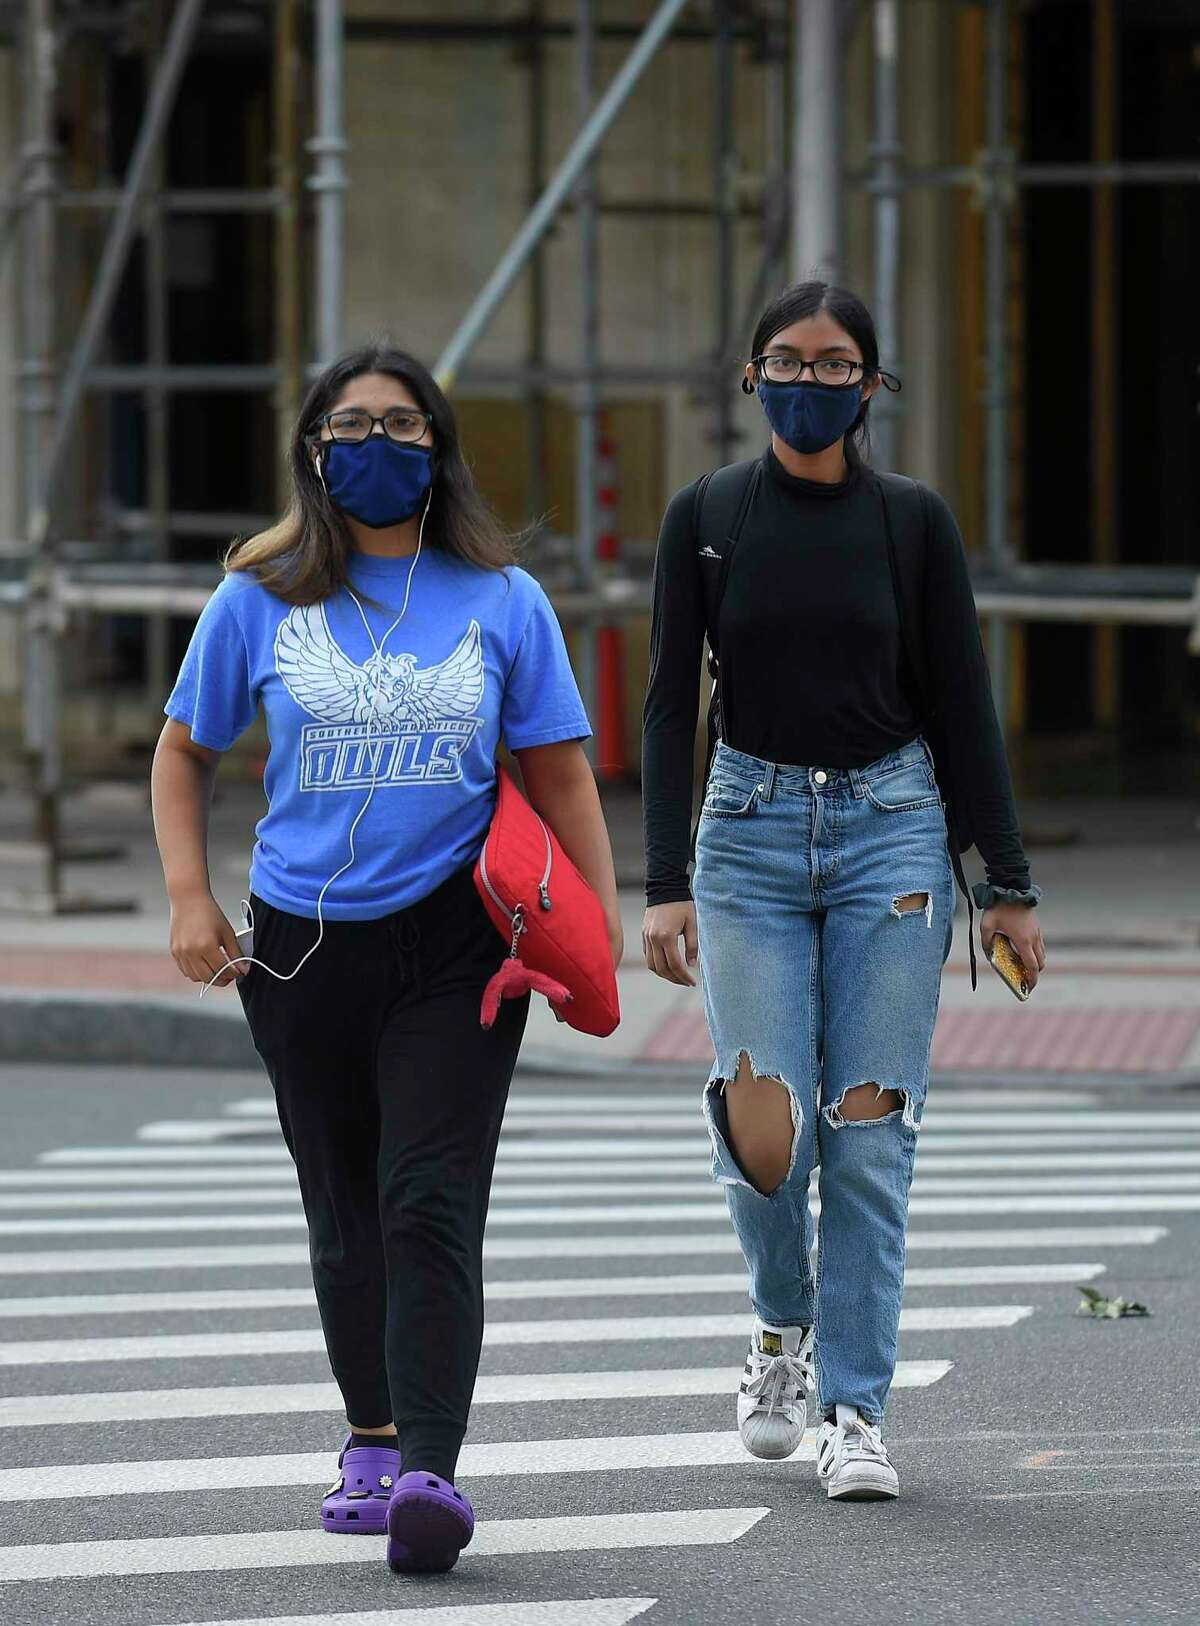 Young people wear masks as they walk through the downtown business district on Sept. 16, 2020 in Stamford, Connecticut.